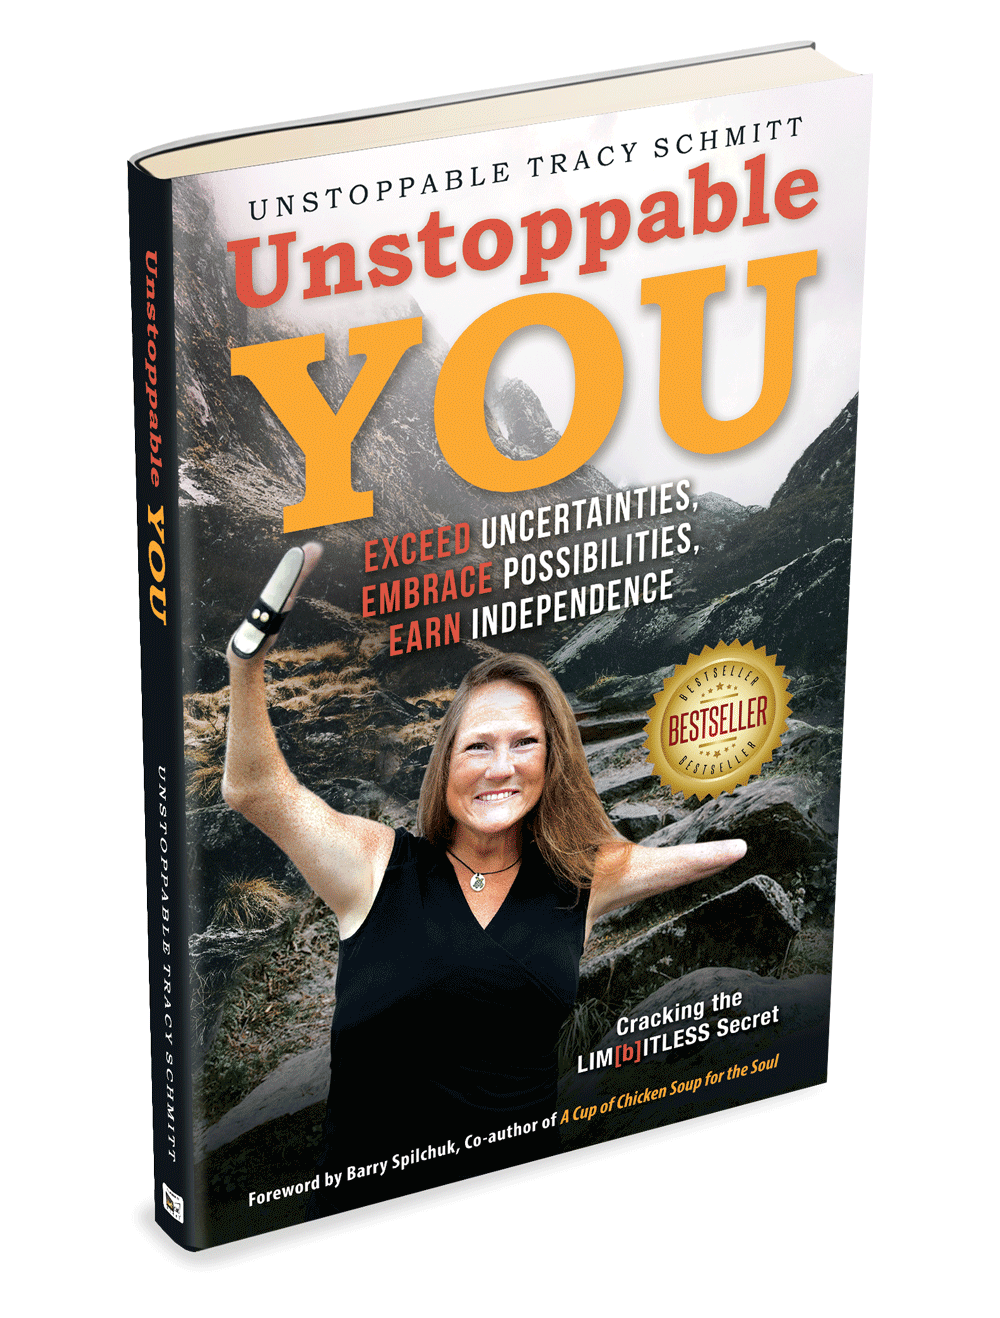 tracy schmitt unstoppable you book cover